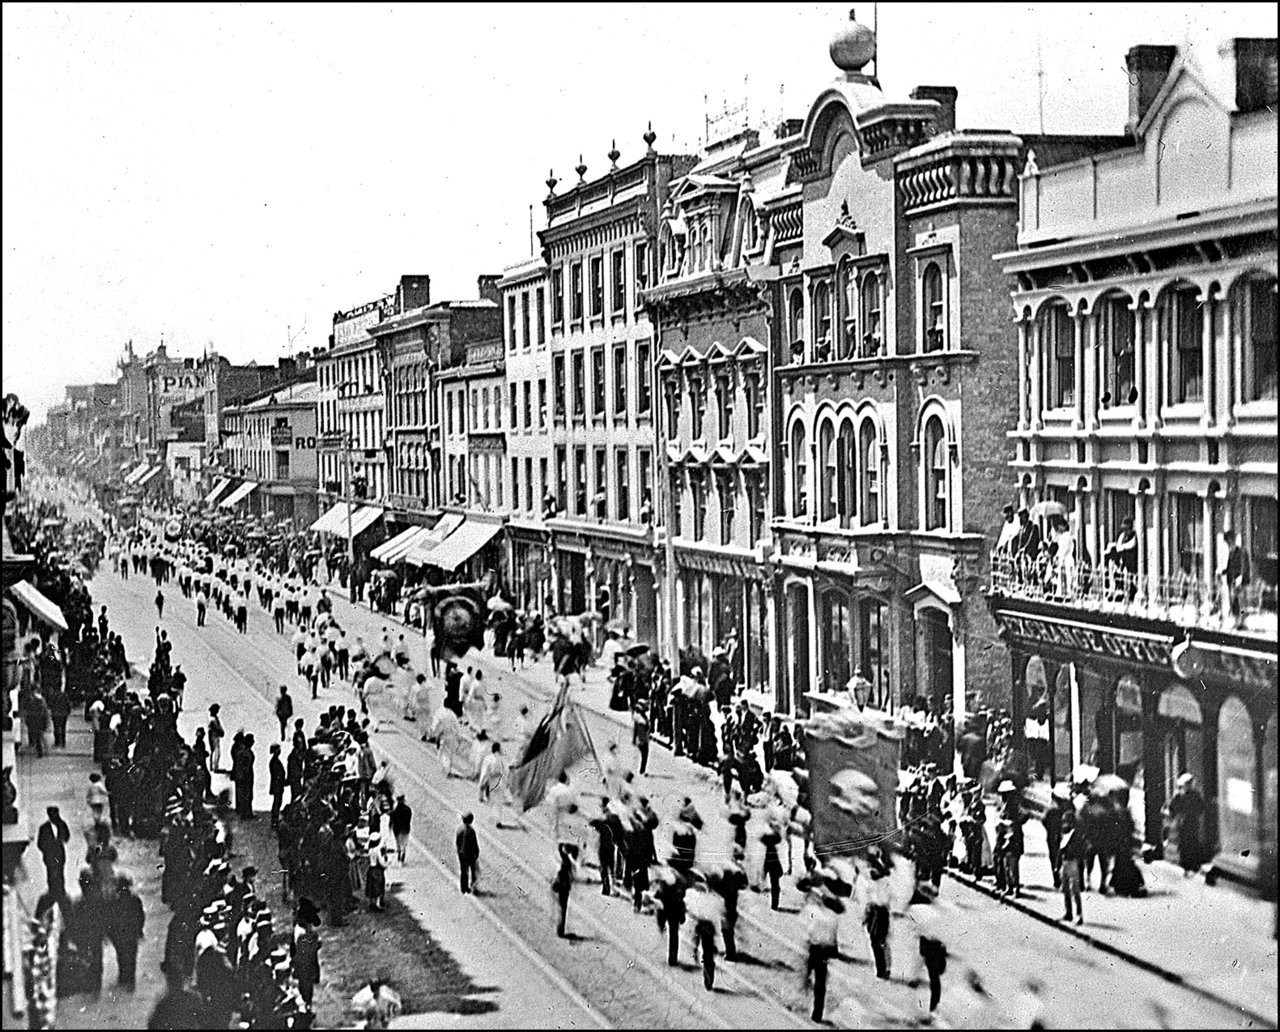 July 12-Orange Parade, King St. E. looking W. from E. of present Victoria St. c.187_?  TPL.jpg